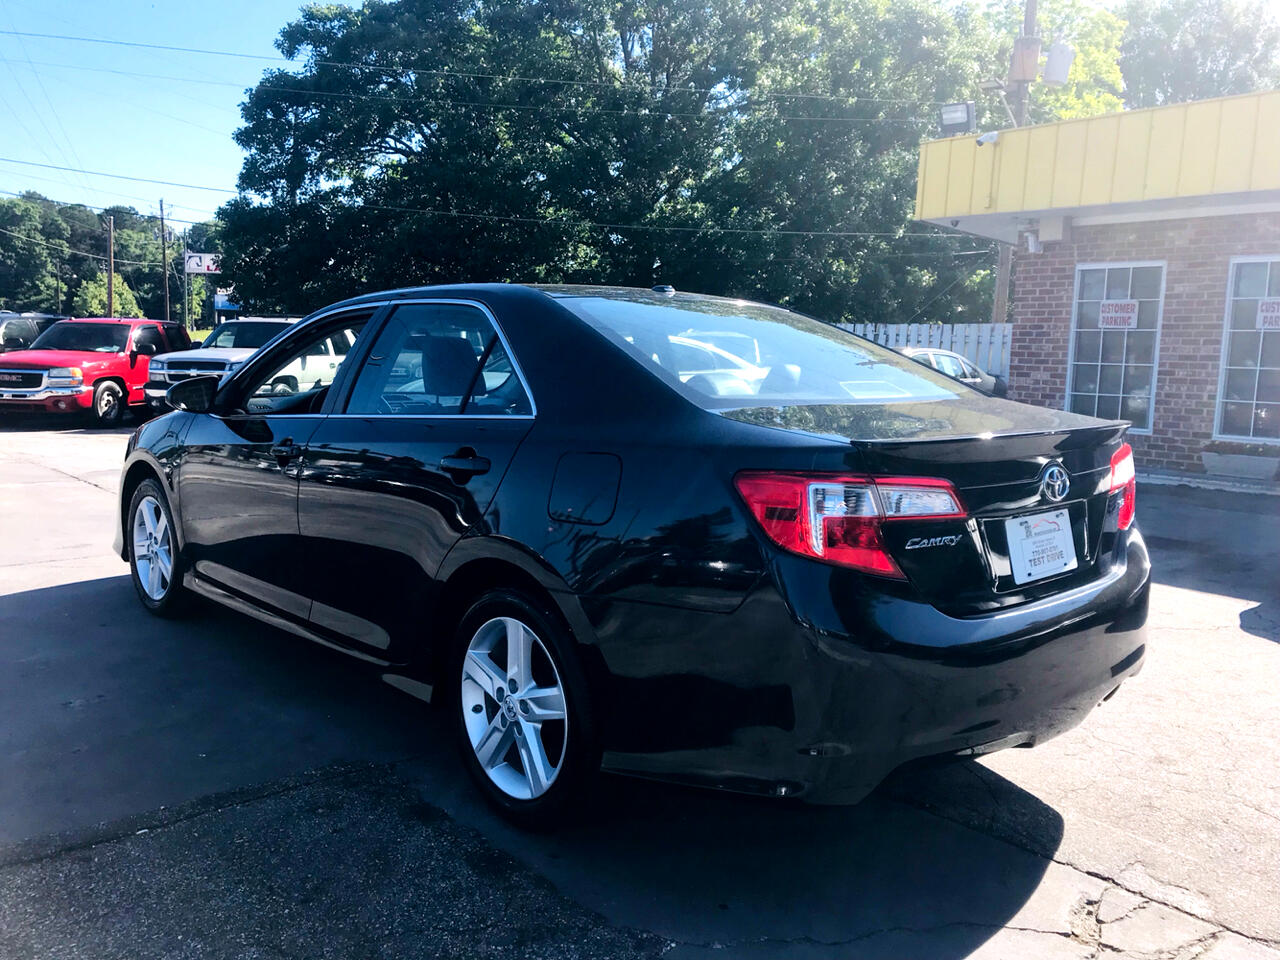 2013 Toyota Camry 4dr Sdn I4 Auto SE Sport Limited Edition (Natl)